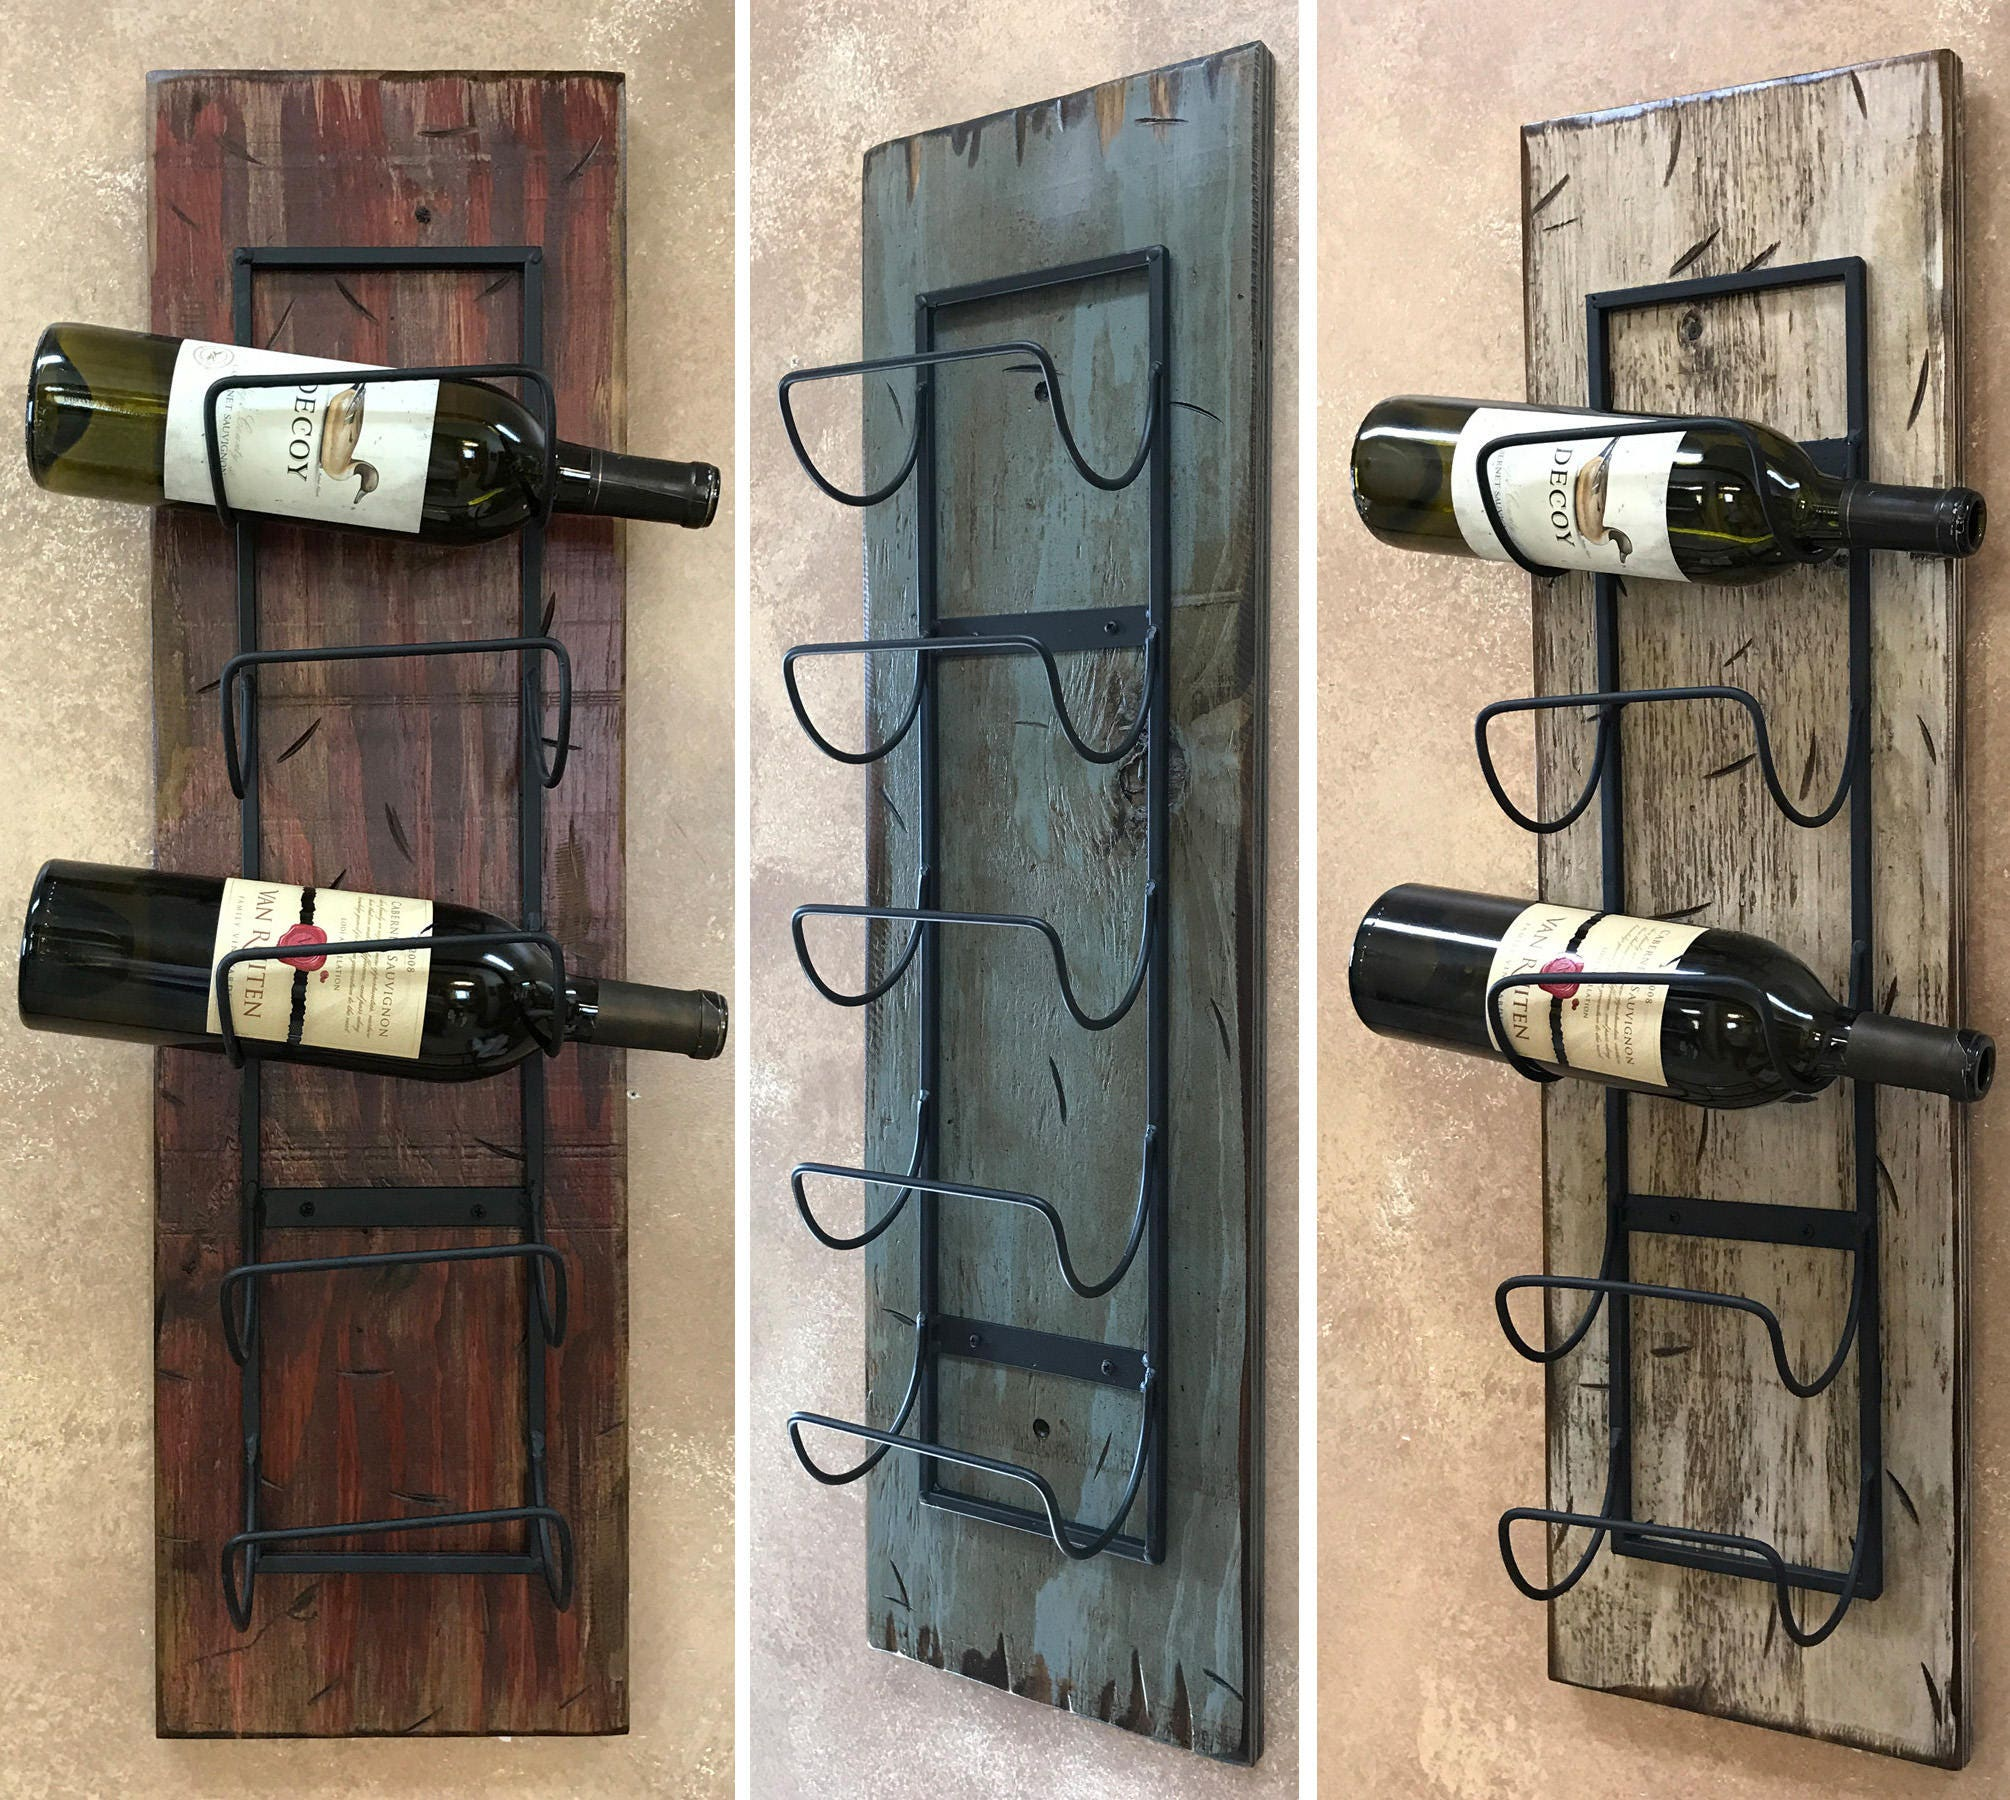 Antique Cream Wood Metal Wall Decor: WINE RACK Wall Wood 5 Bottle Holder With Metal Home Decor